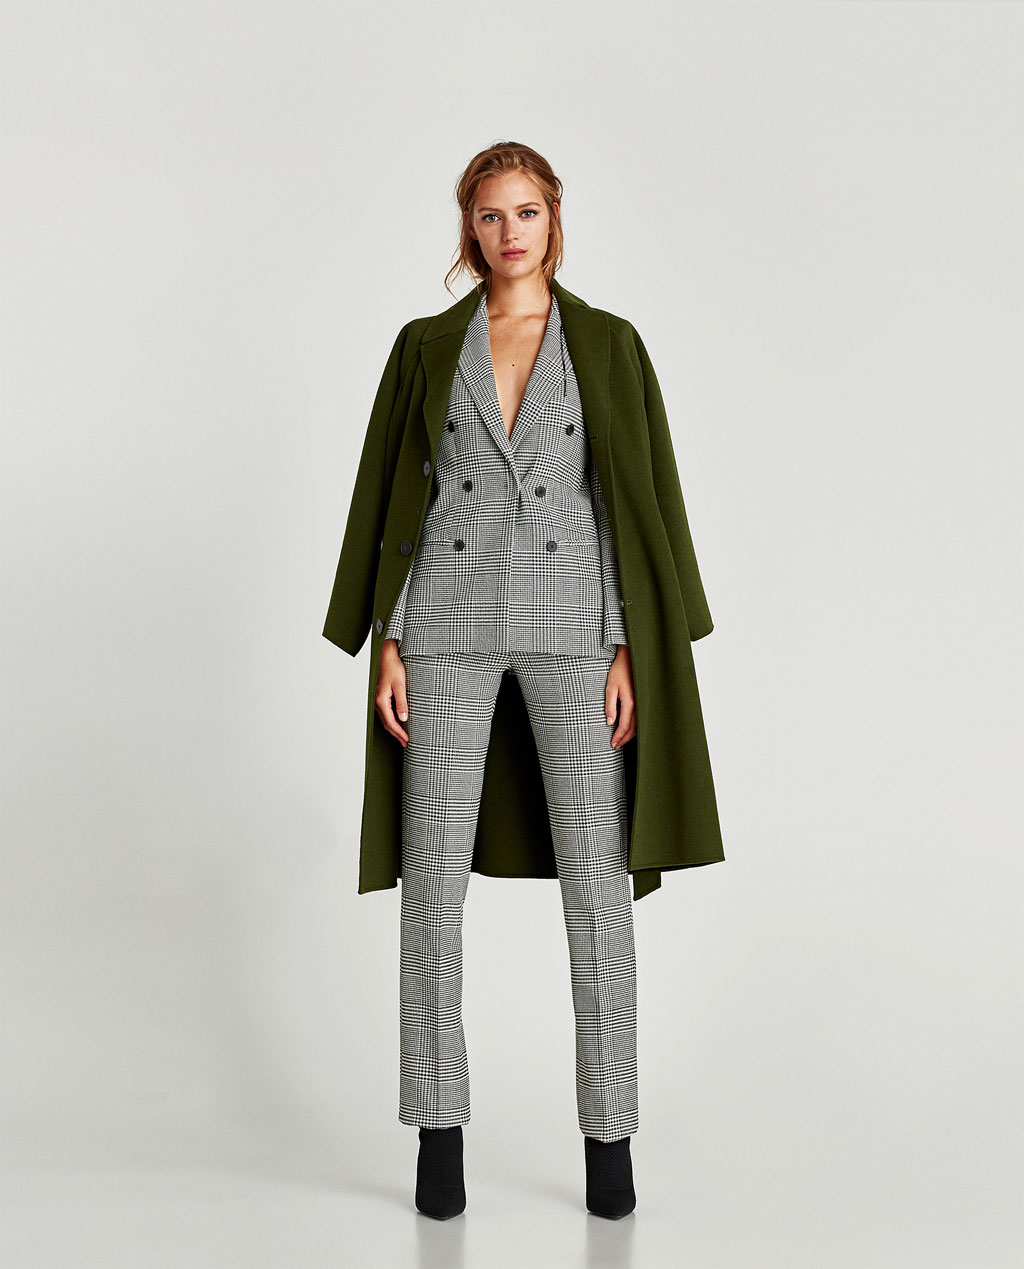 I love the nipped waist on this modern interpretation of the original Dior Bar Suit.With perfectly tailored trousers, this updated suit is a win win!